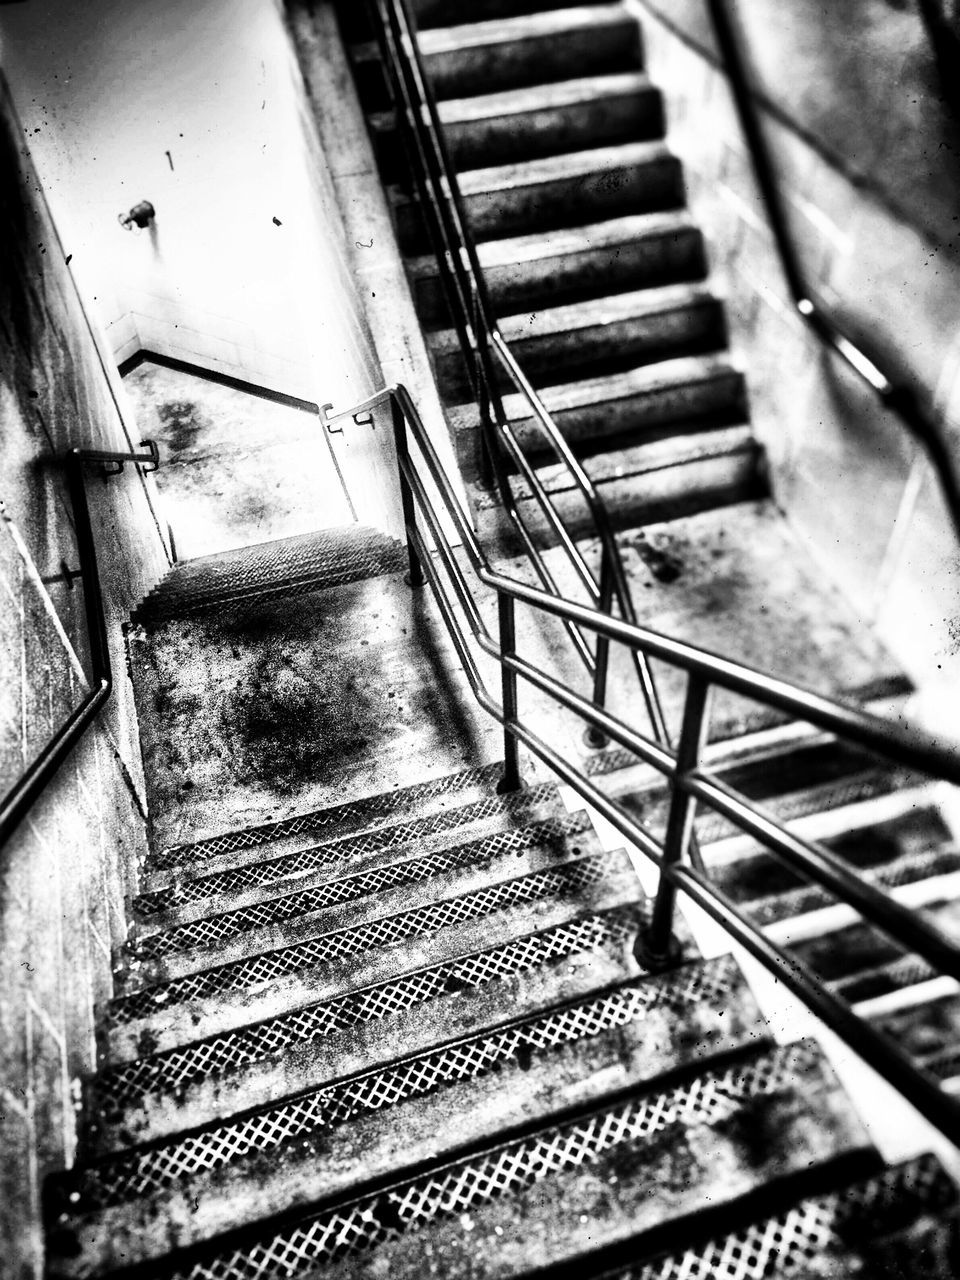 steps and staircases, staircase, steps, railing, indoors, high angle view, stairs, no people, food and drink, hand rail, day, close-up